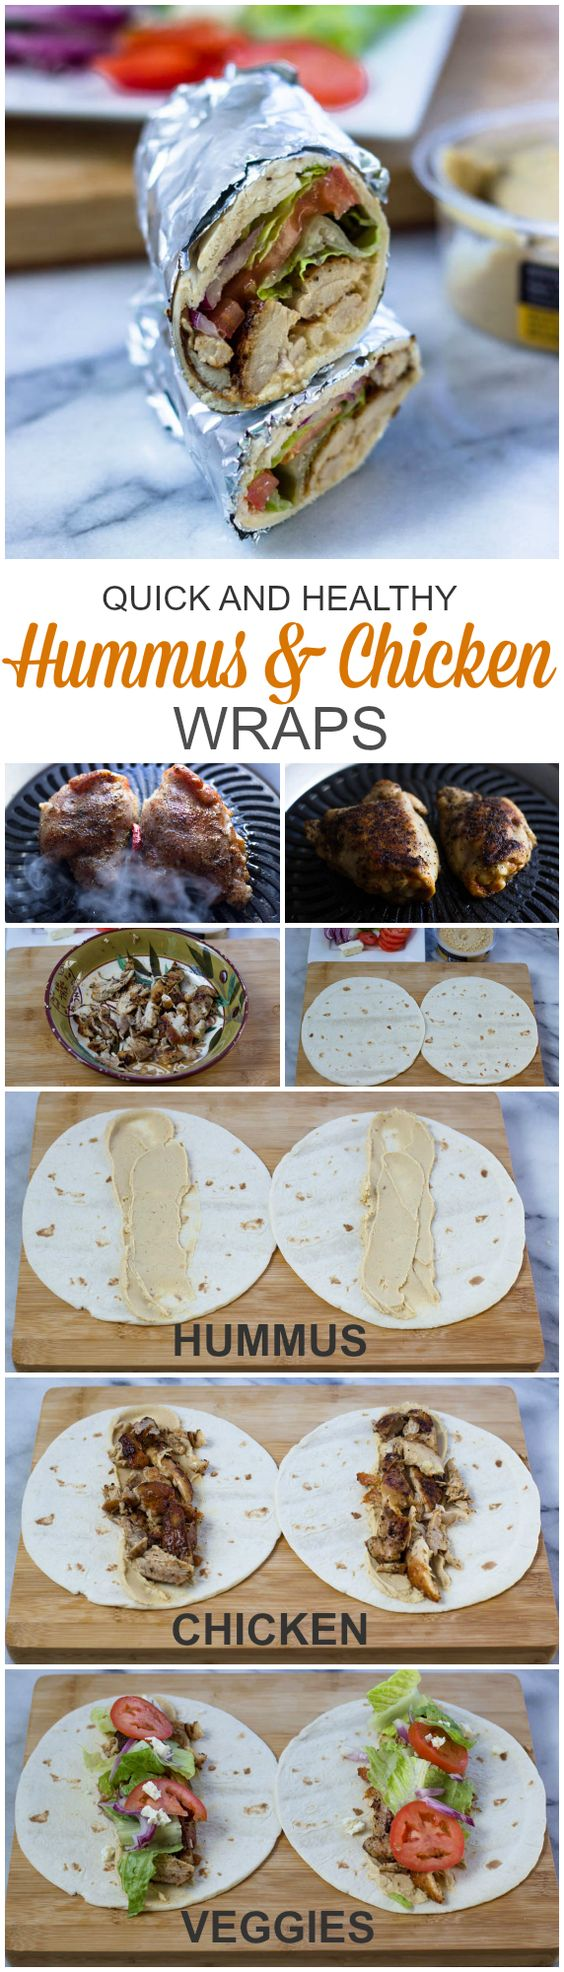 http://gimmedelicious.com/2015/01/14/hummus-and-chicken-wraps-quick-healthy-adaptable/